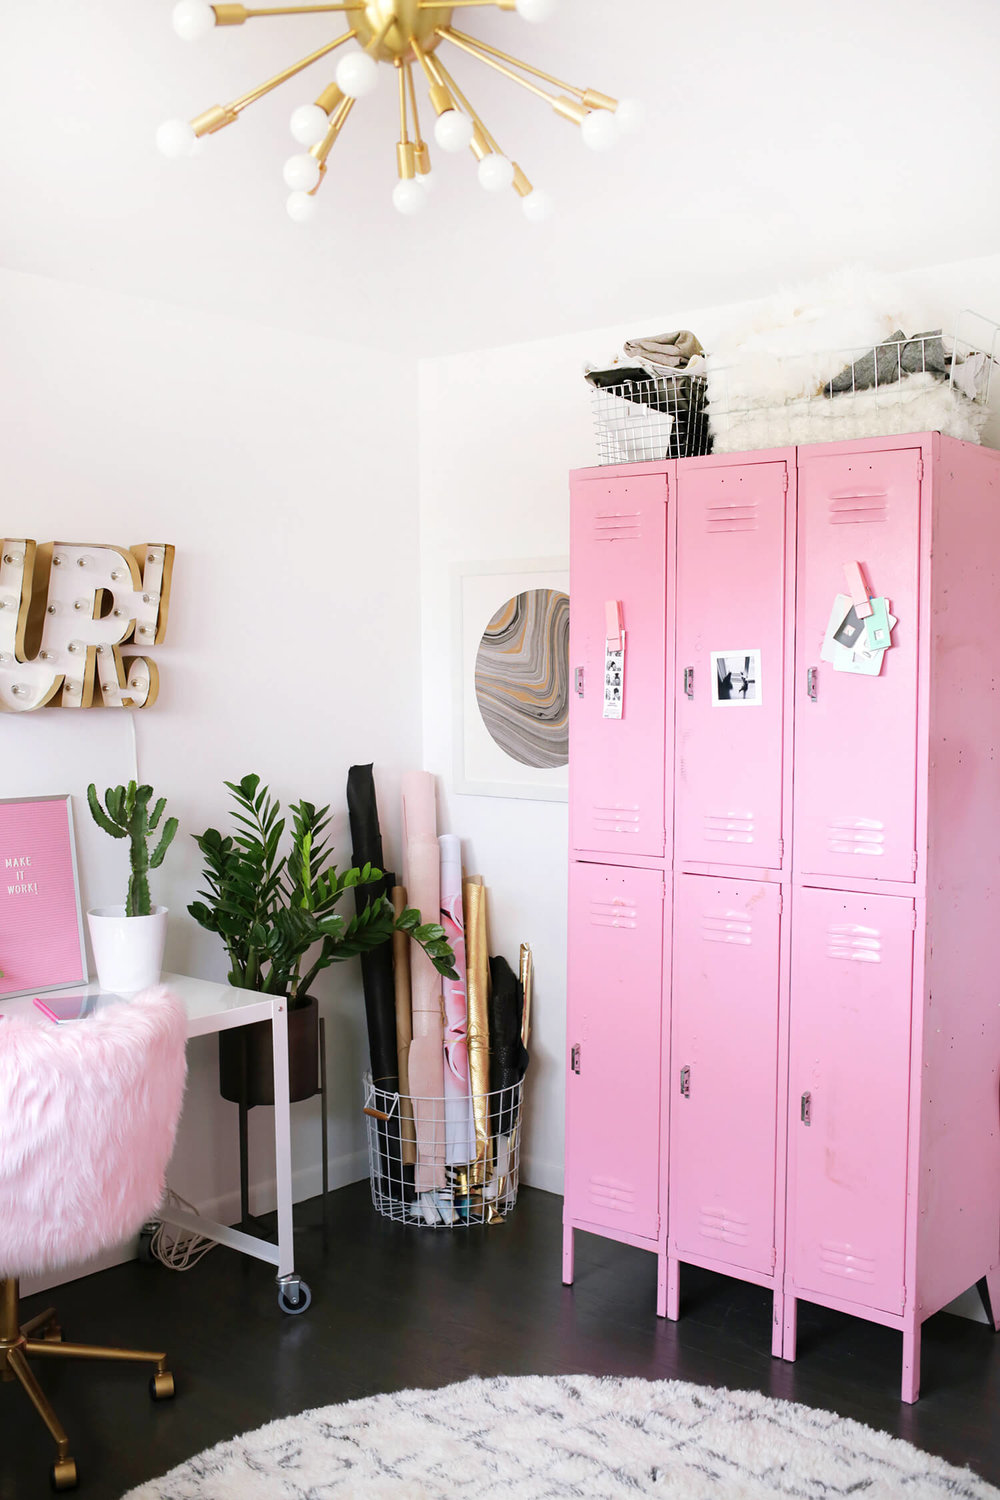 Laura's Craft Room from A Beautiful Mess  - closed storage is found in the pink lockers (swoon), while she displays rolls of fabric & vinyl in a basket.